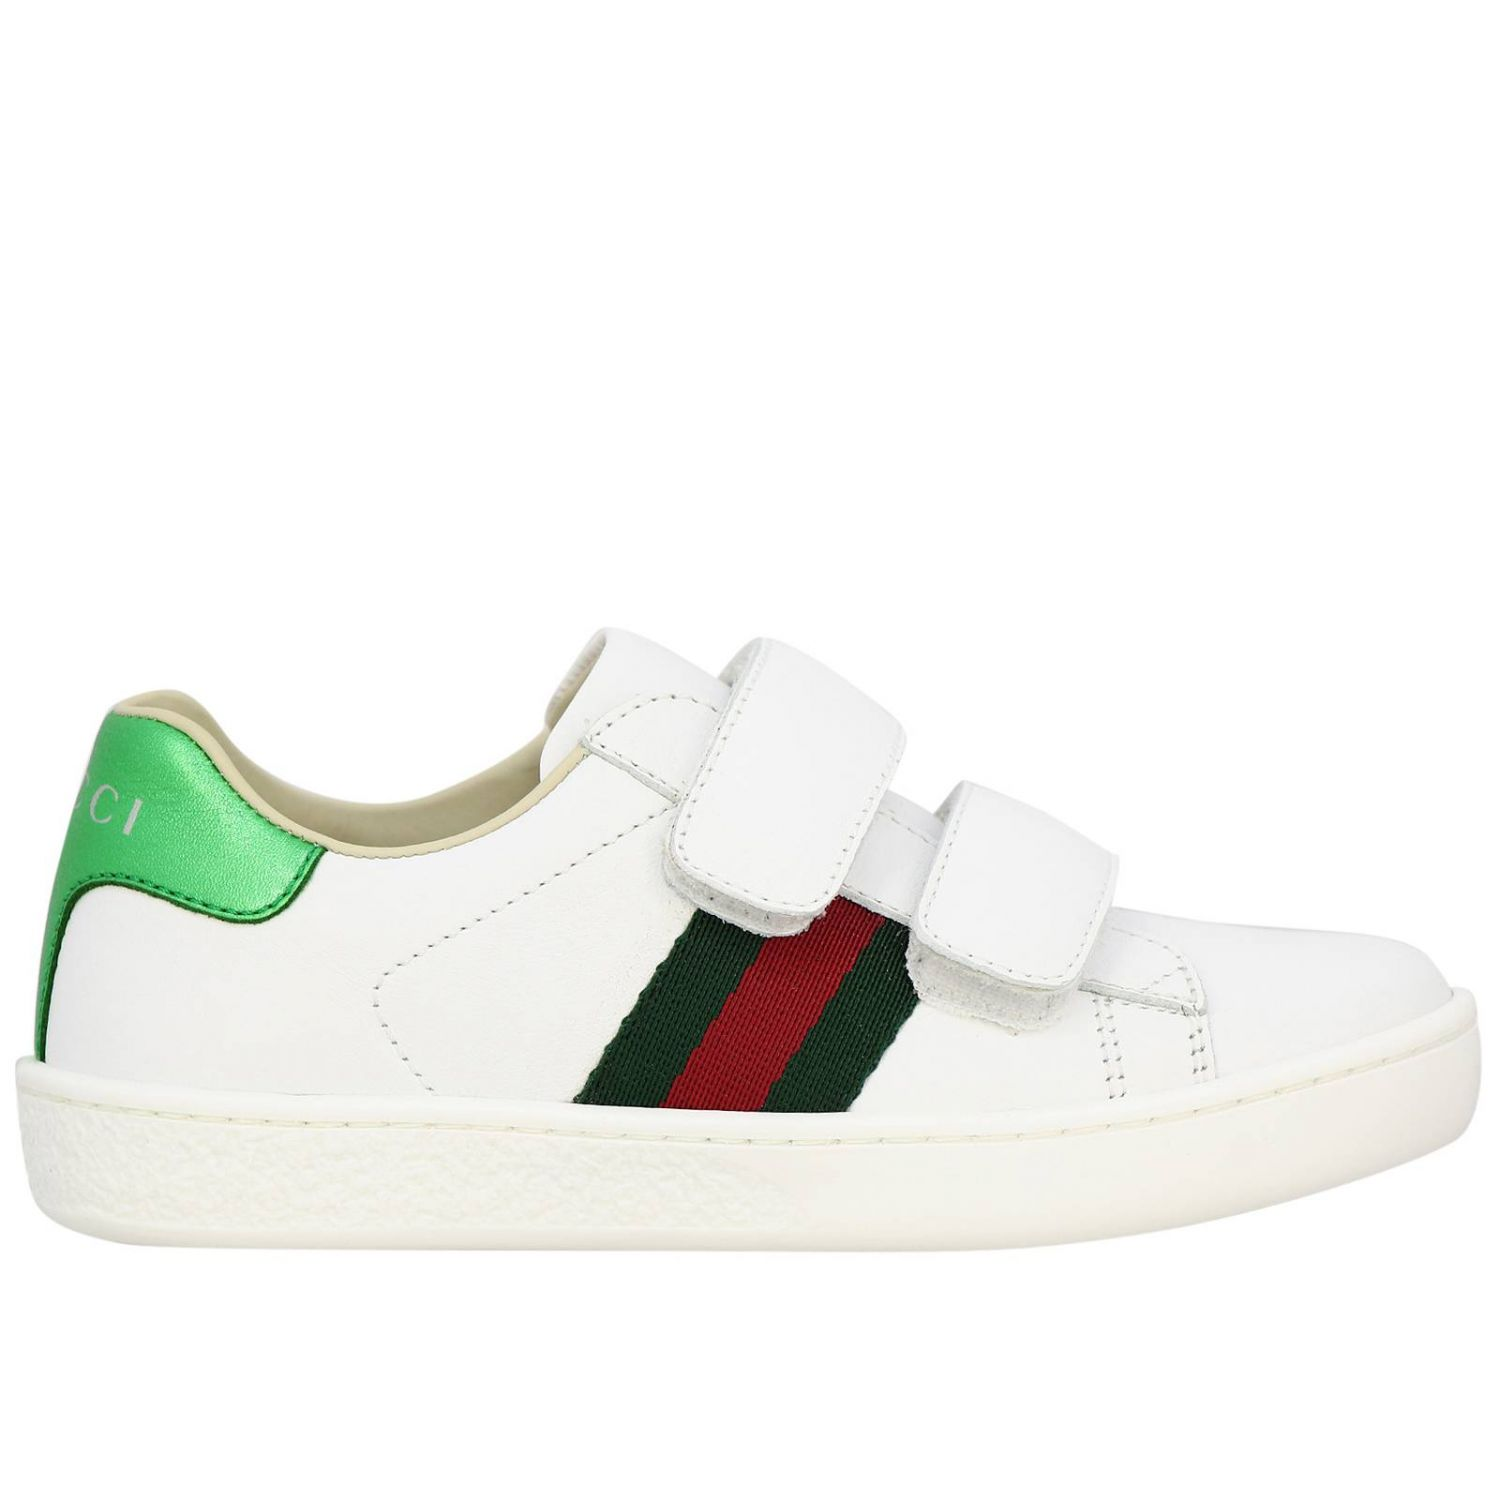 Zapatillas de cuero Ace Gucci con correas web y hebillas dobles blanco 1